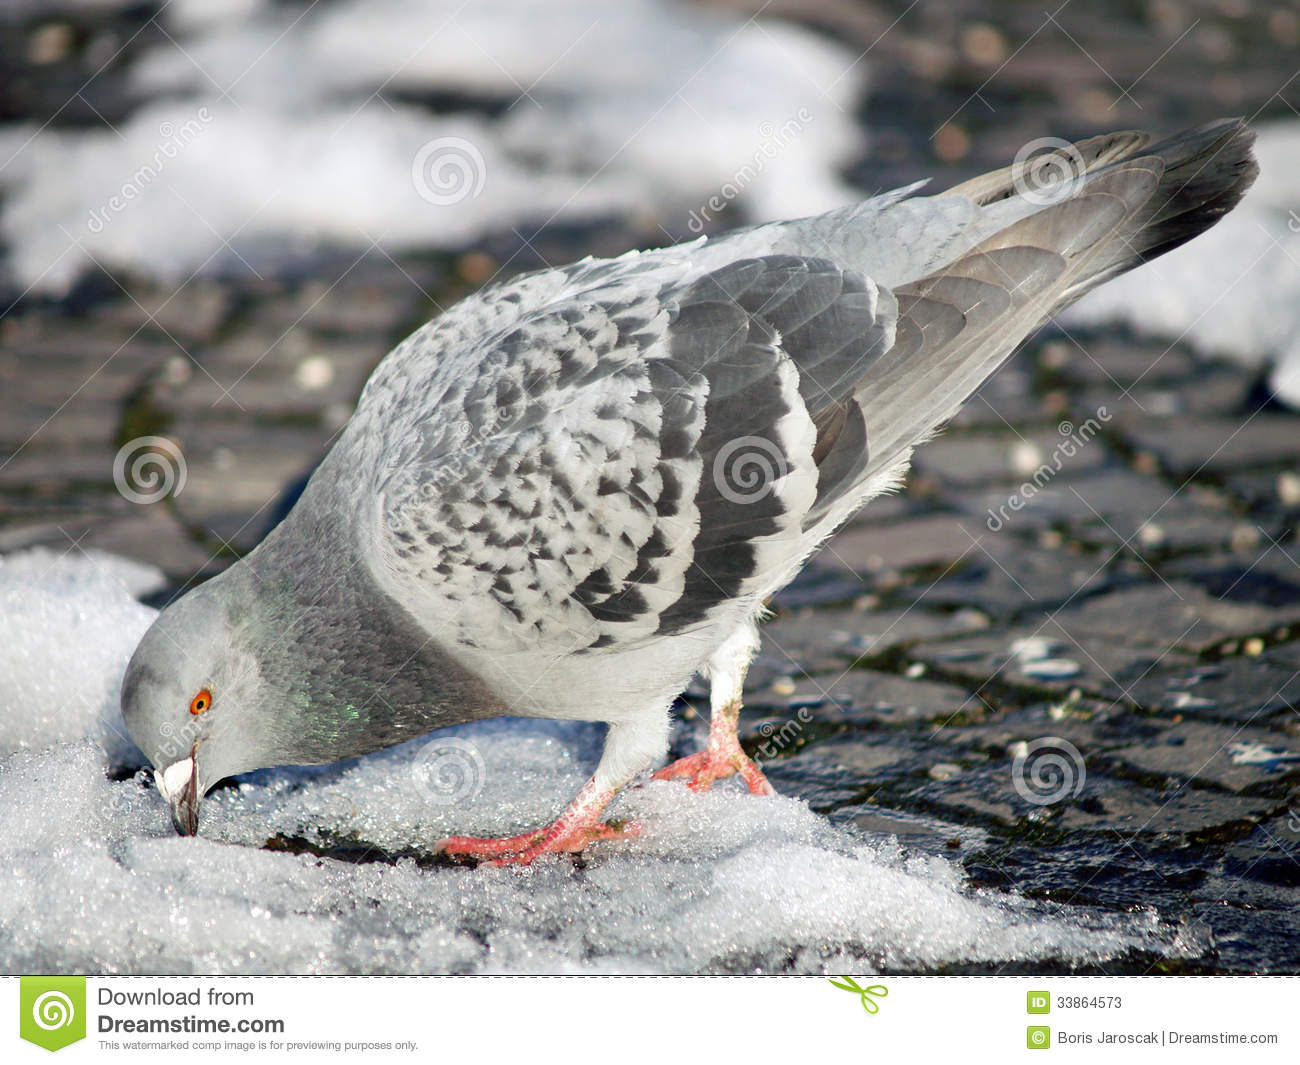 Pigeon trying to find food on snow